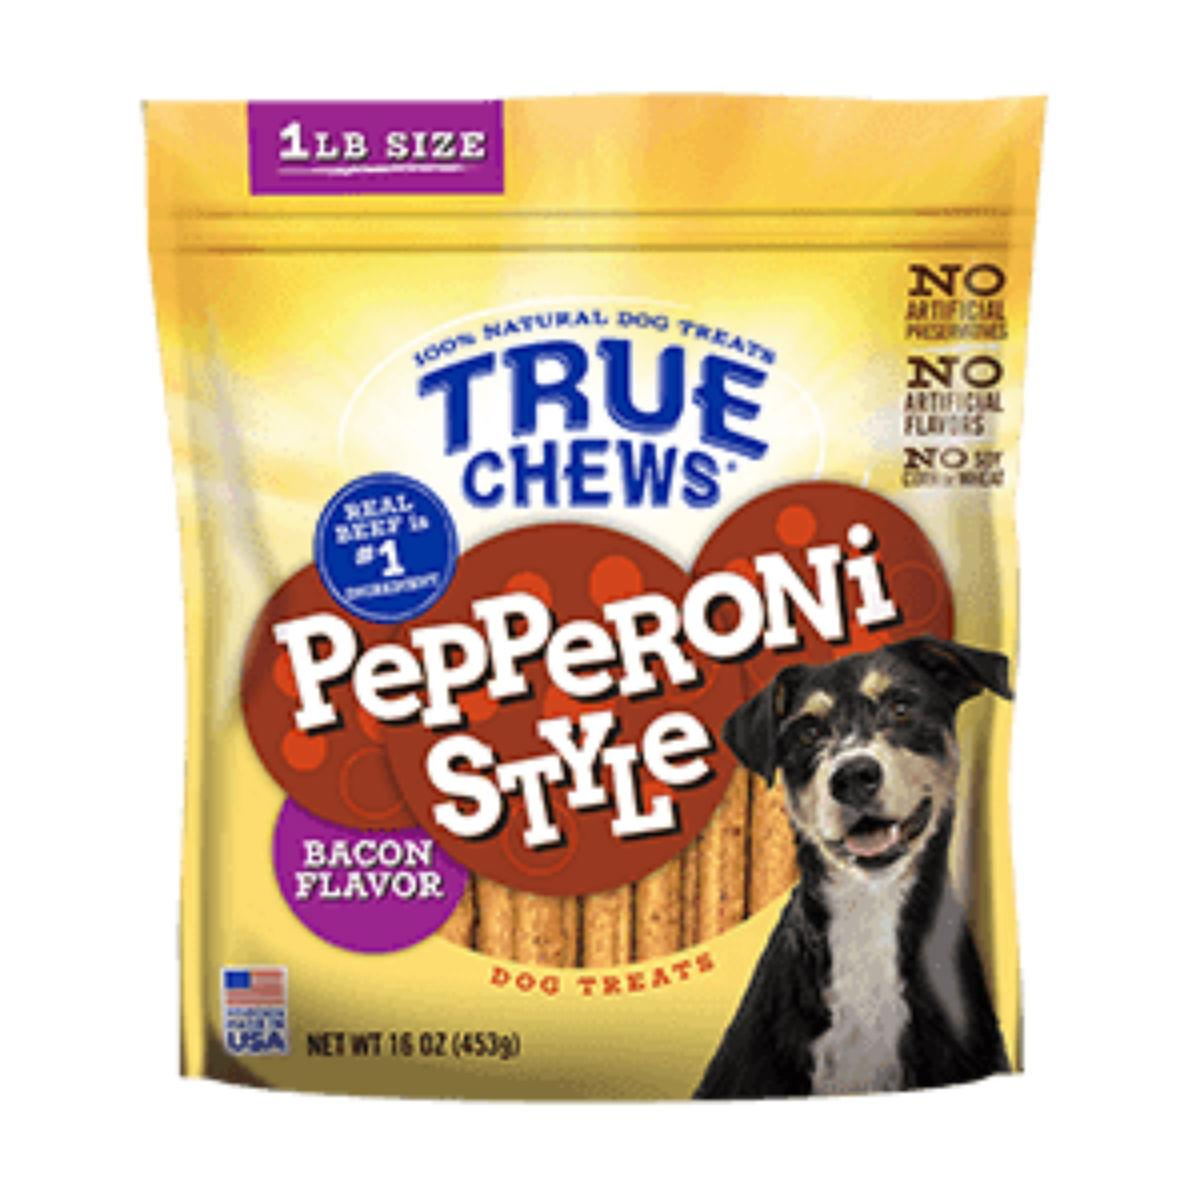 True Chews Pepperoni Style Dog Treat - Bacon